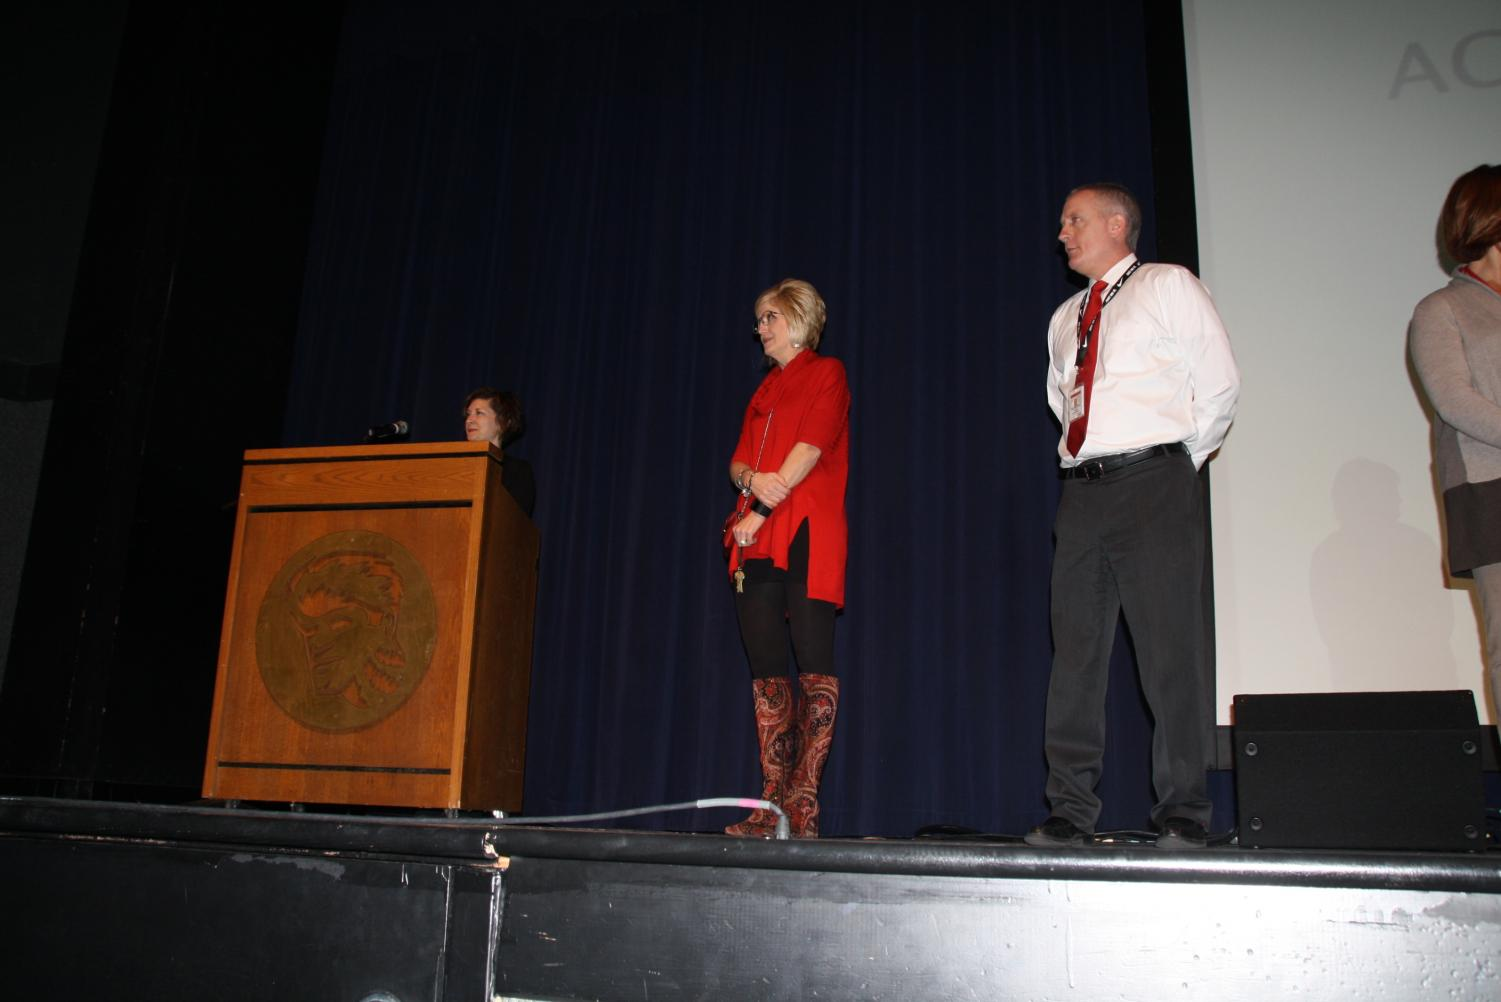 Dr.+Mike+Havener%2C+principal+and+Dr.+Jessica+Vehlewald%2C+assistant+principal%2C+stand+on+stage+to+give+students+awards.